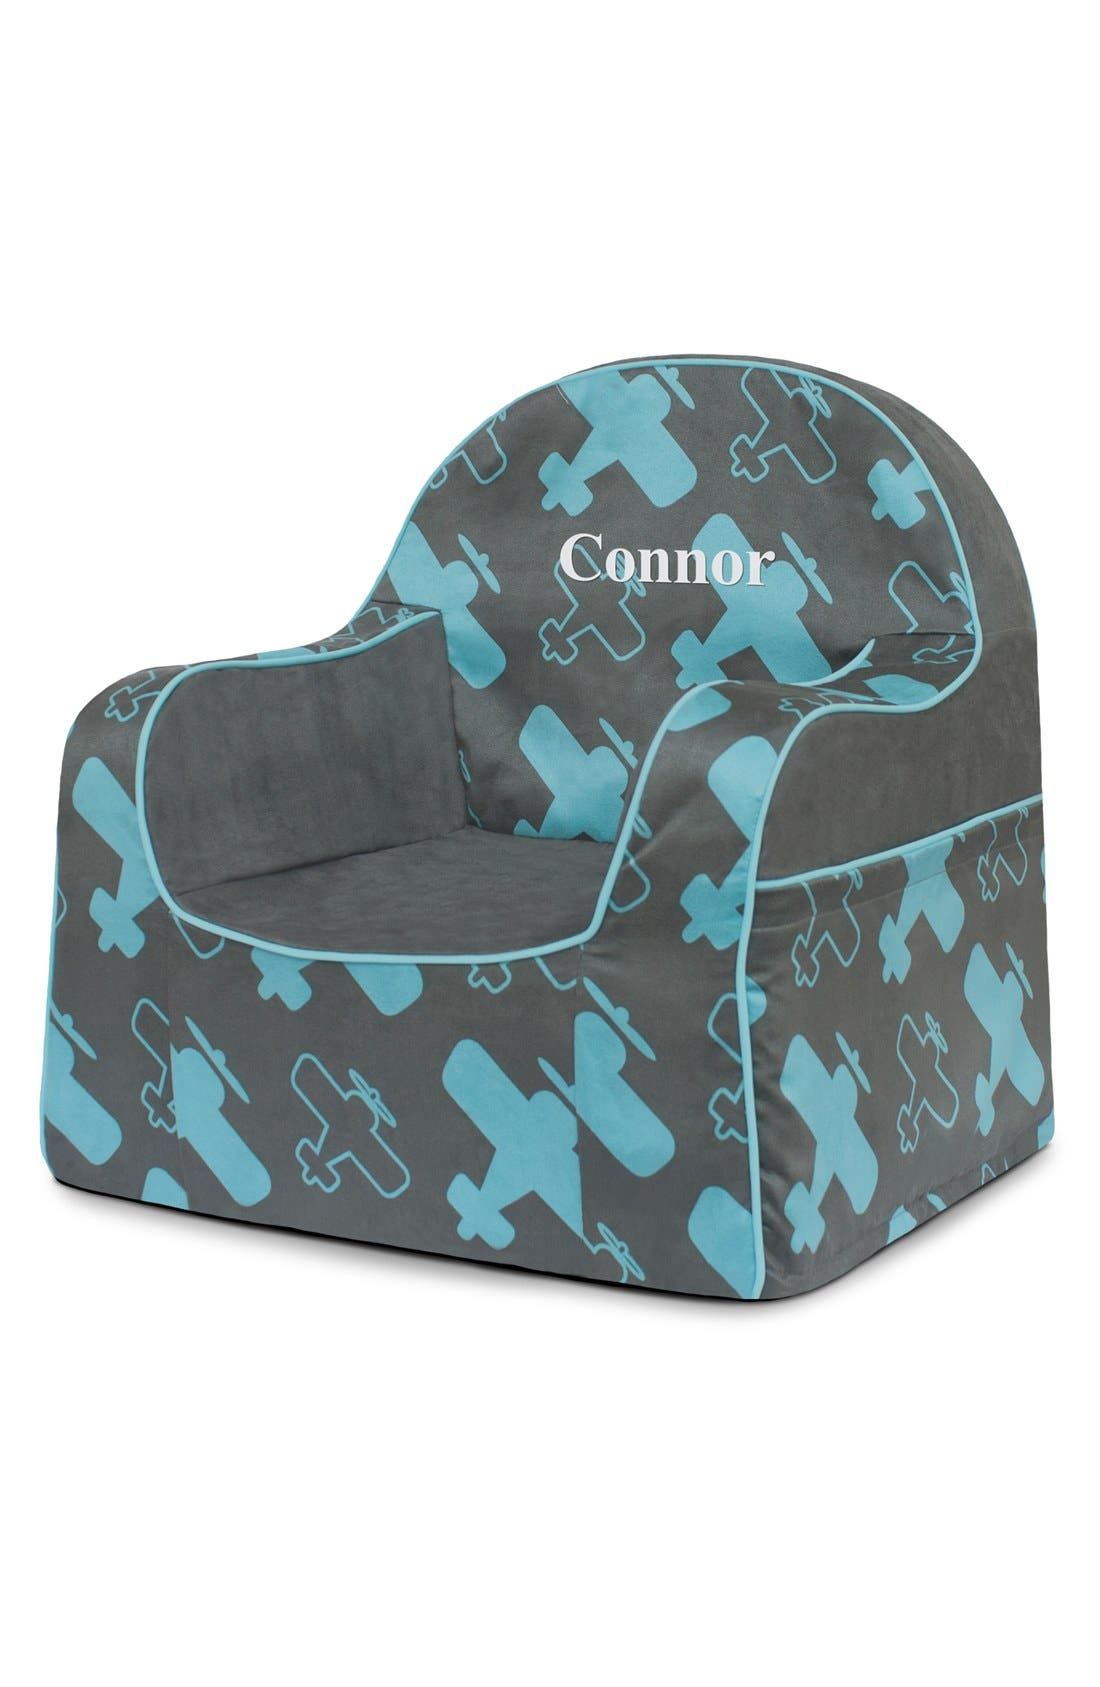 'Personalized Little Reader' Chair,                             Main thumbnail 1, color,                             Planes